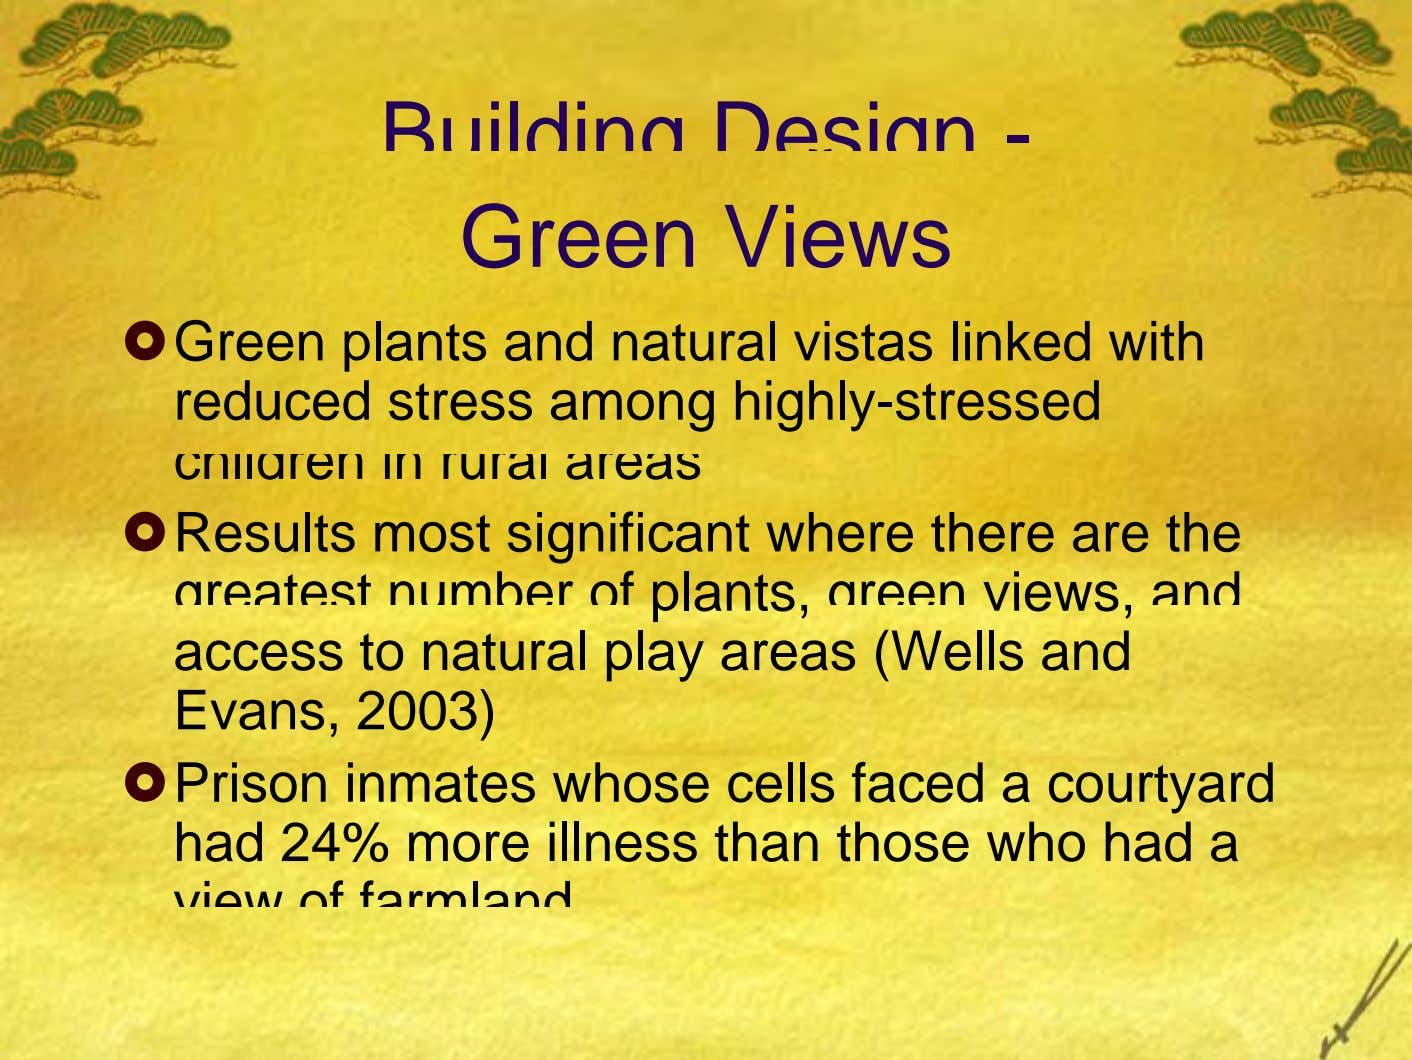 Building Design - Green Views Green plants and natural vistas linked with reduced stress among highly-stressed